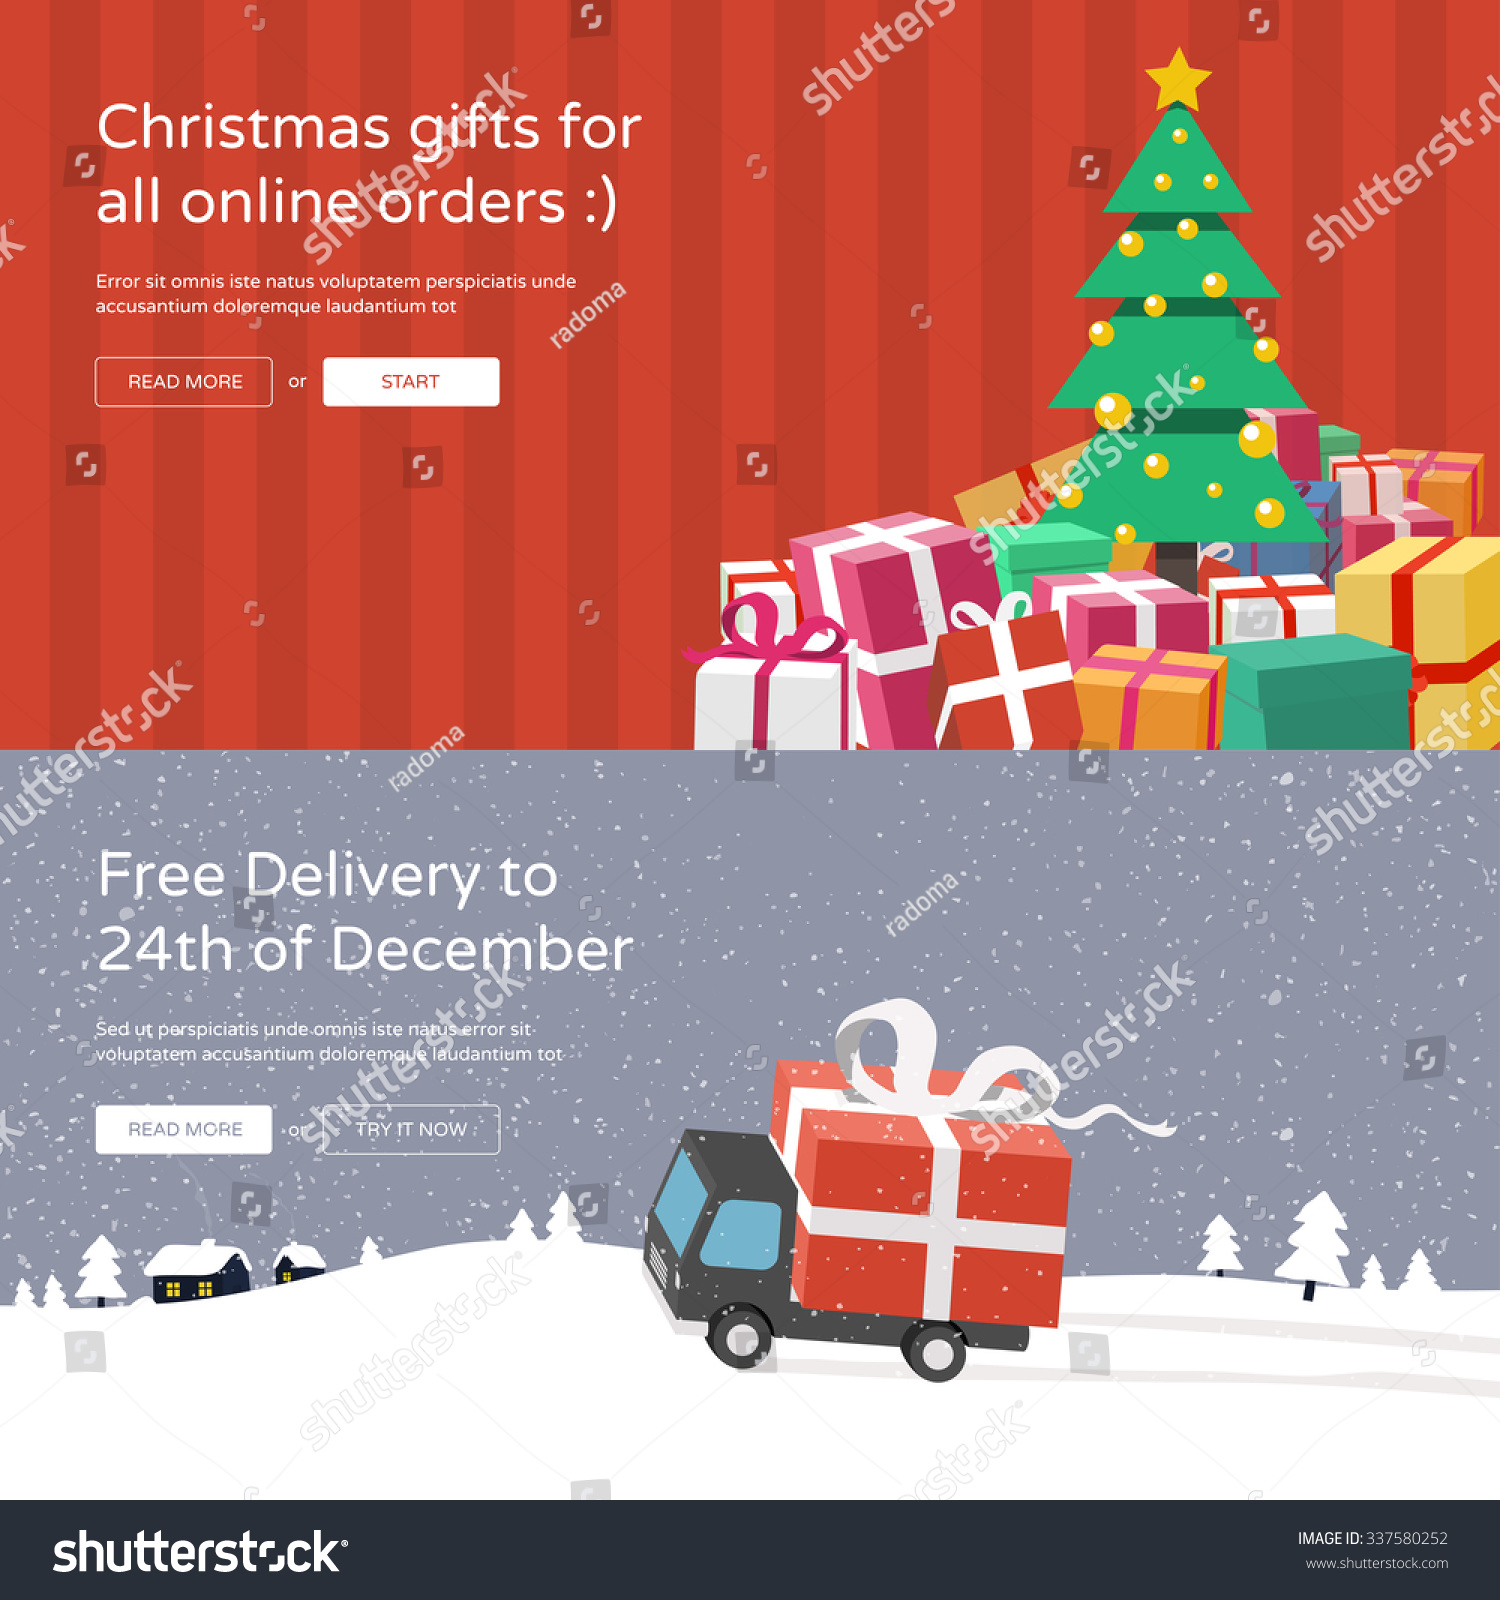 Christmas Website Banners Christmas Tree Gifts Stock Vector (Royalty ...